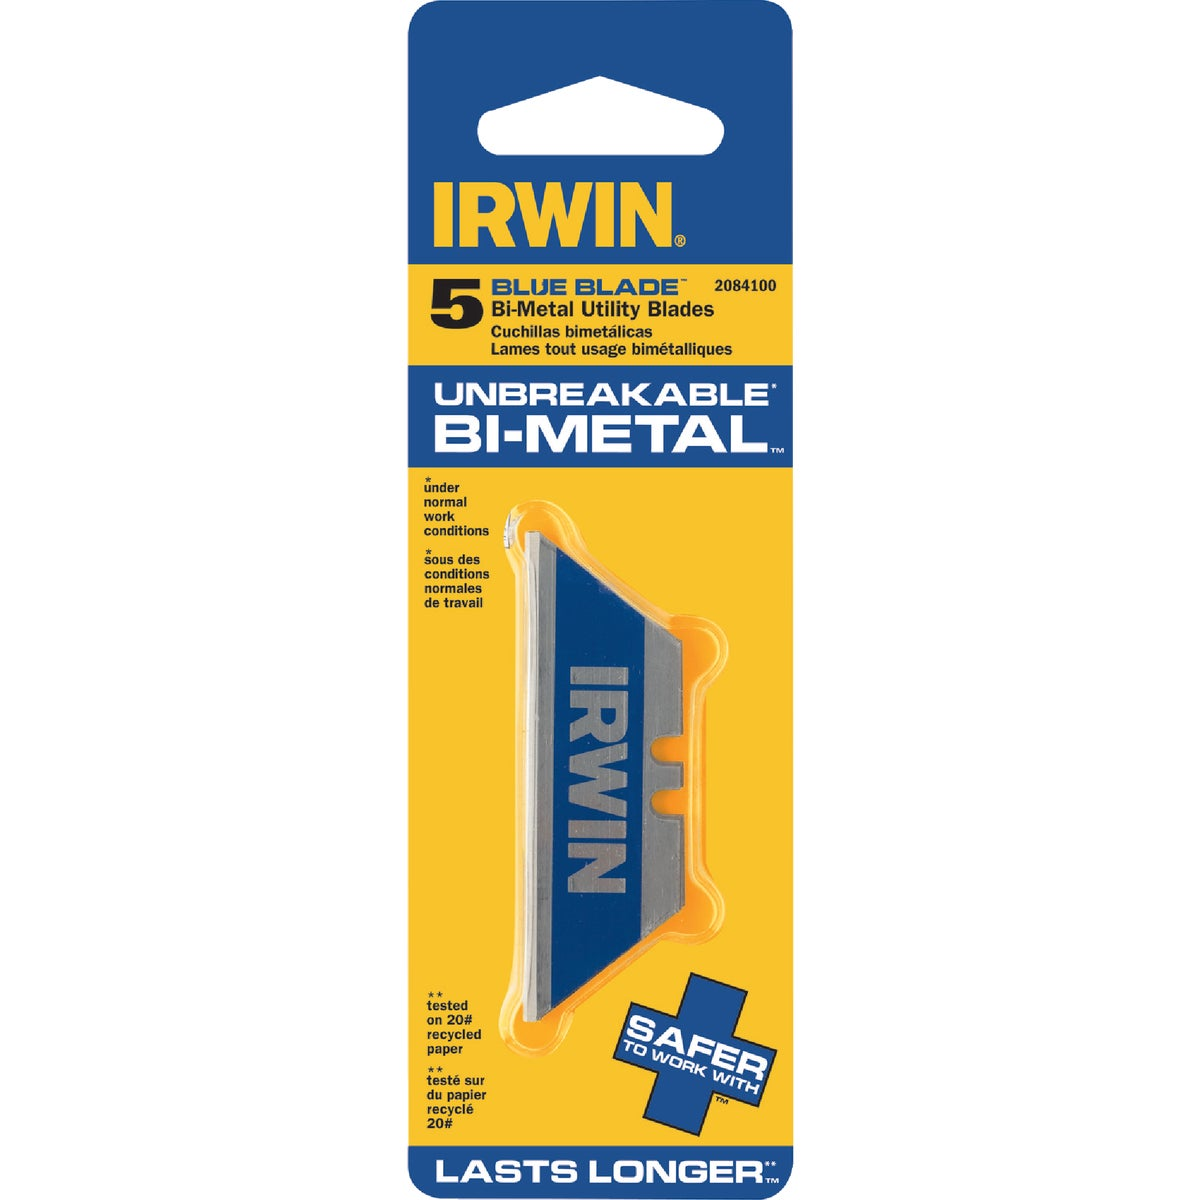 5 PACK BI-METAL BLADE - 2084100 by Irwin Industr Tool